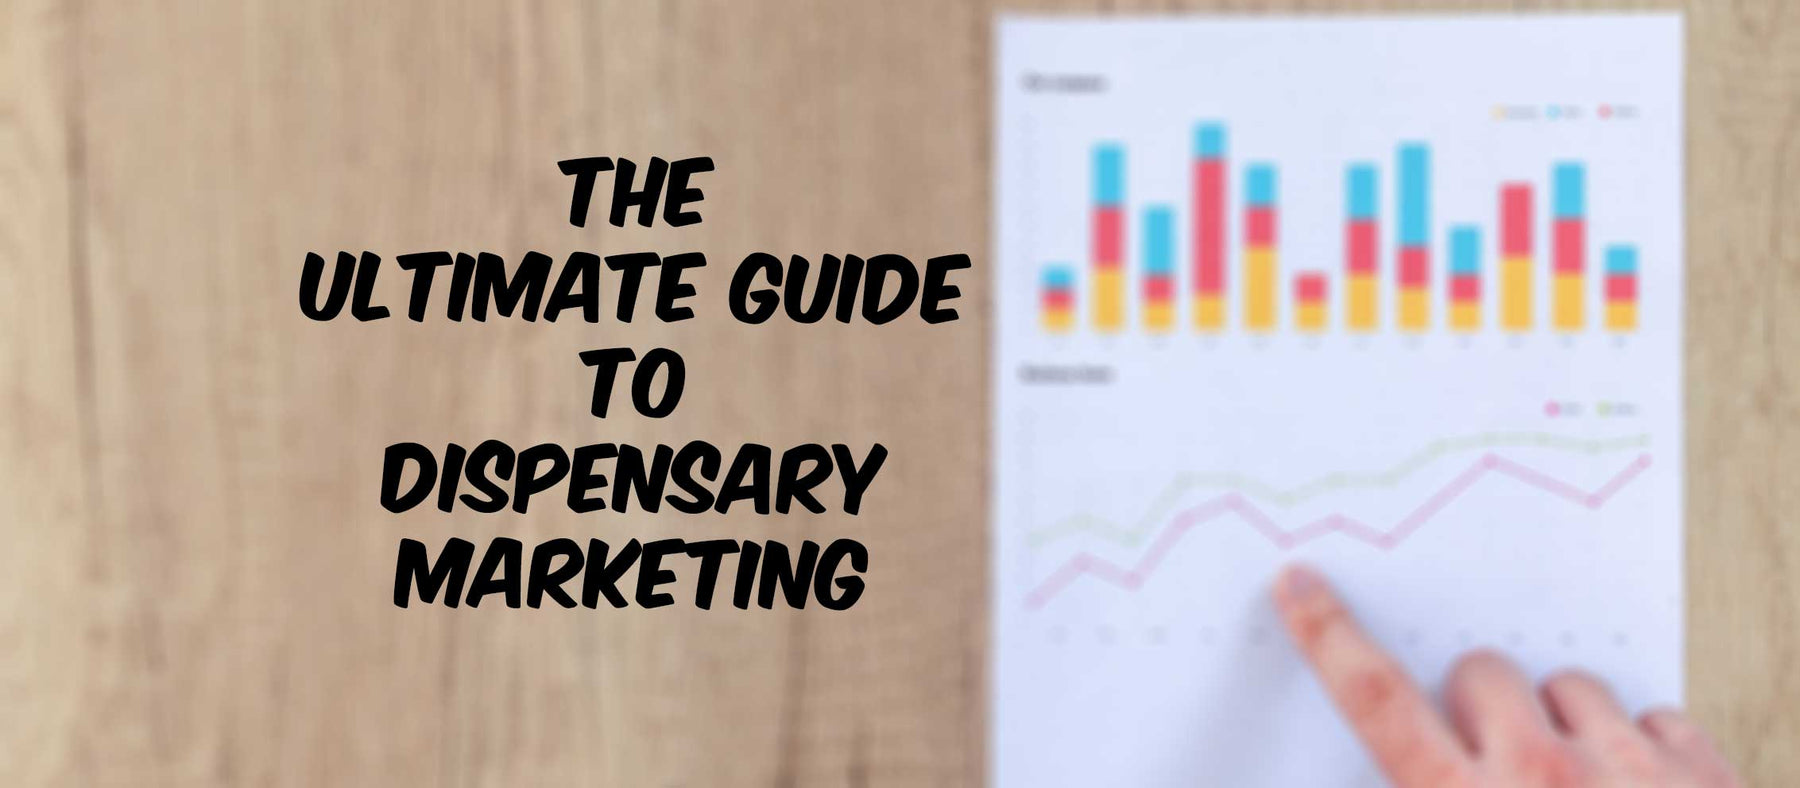 The Ultimate Guide to Dispensary Marketing